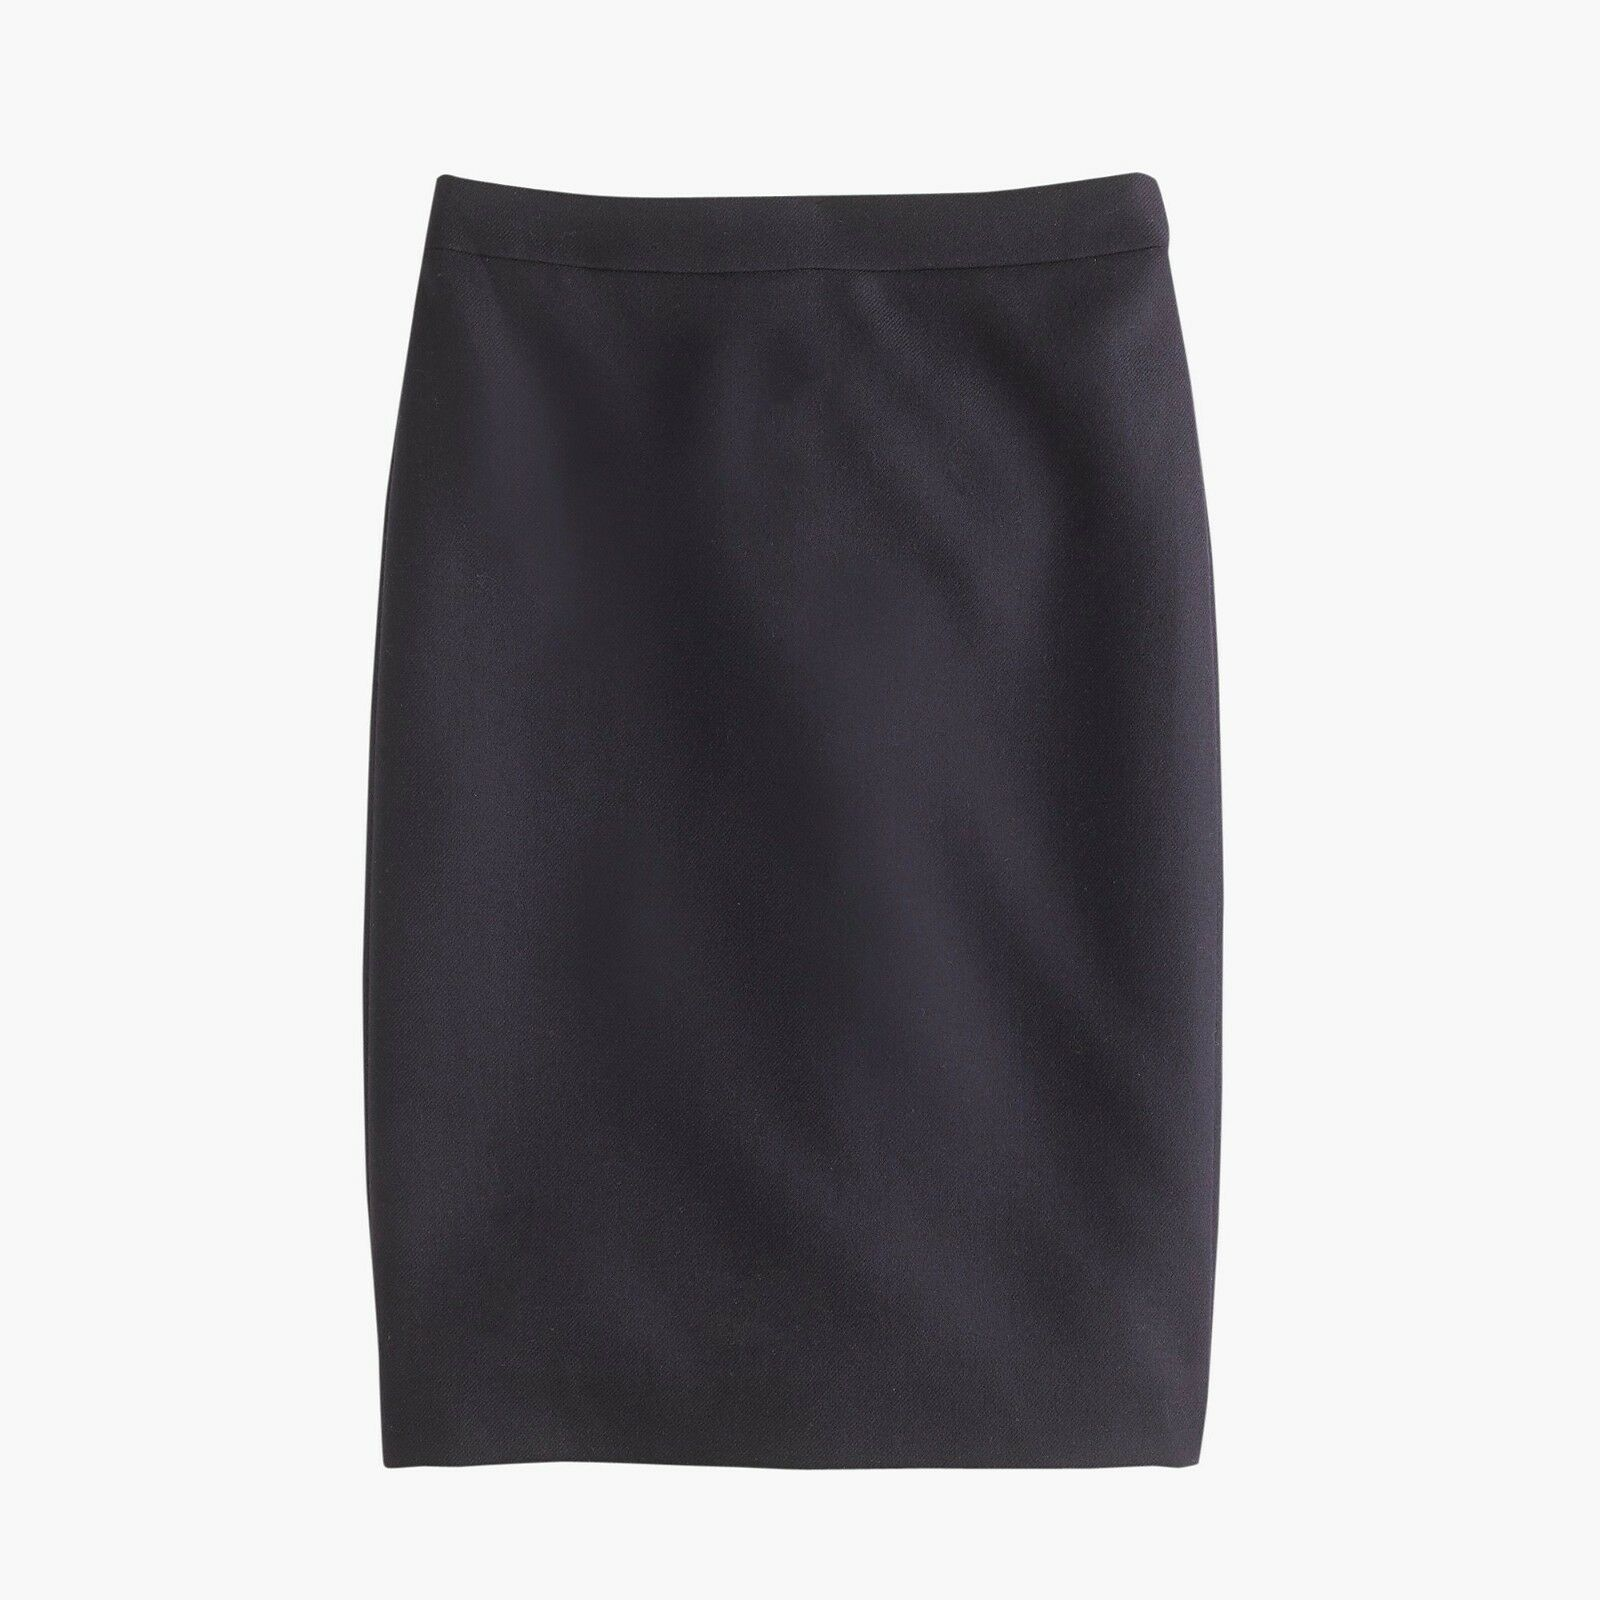 J.Crew No.2 Double-Serge Wool Pencil Skirt 00P Navy